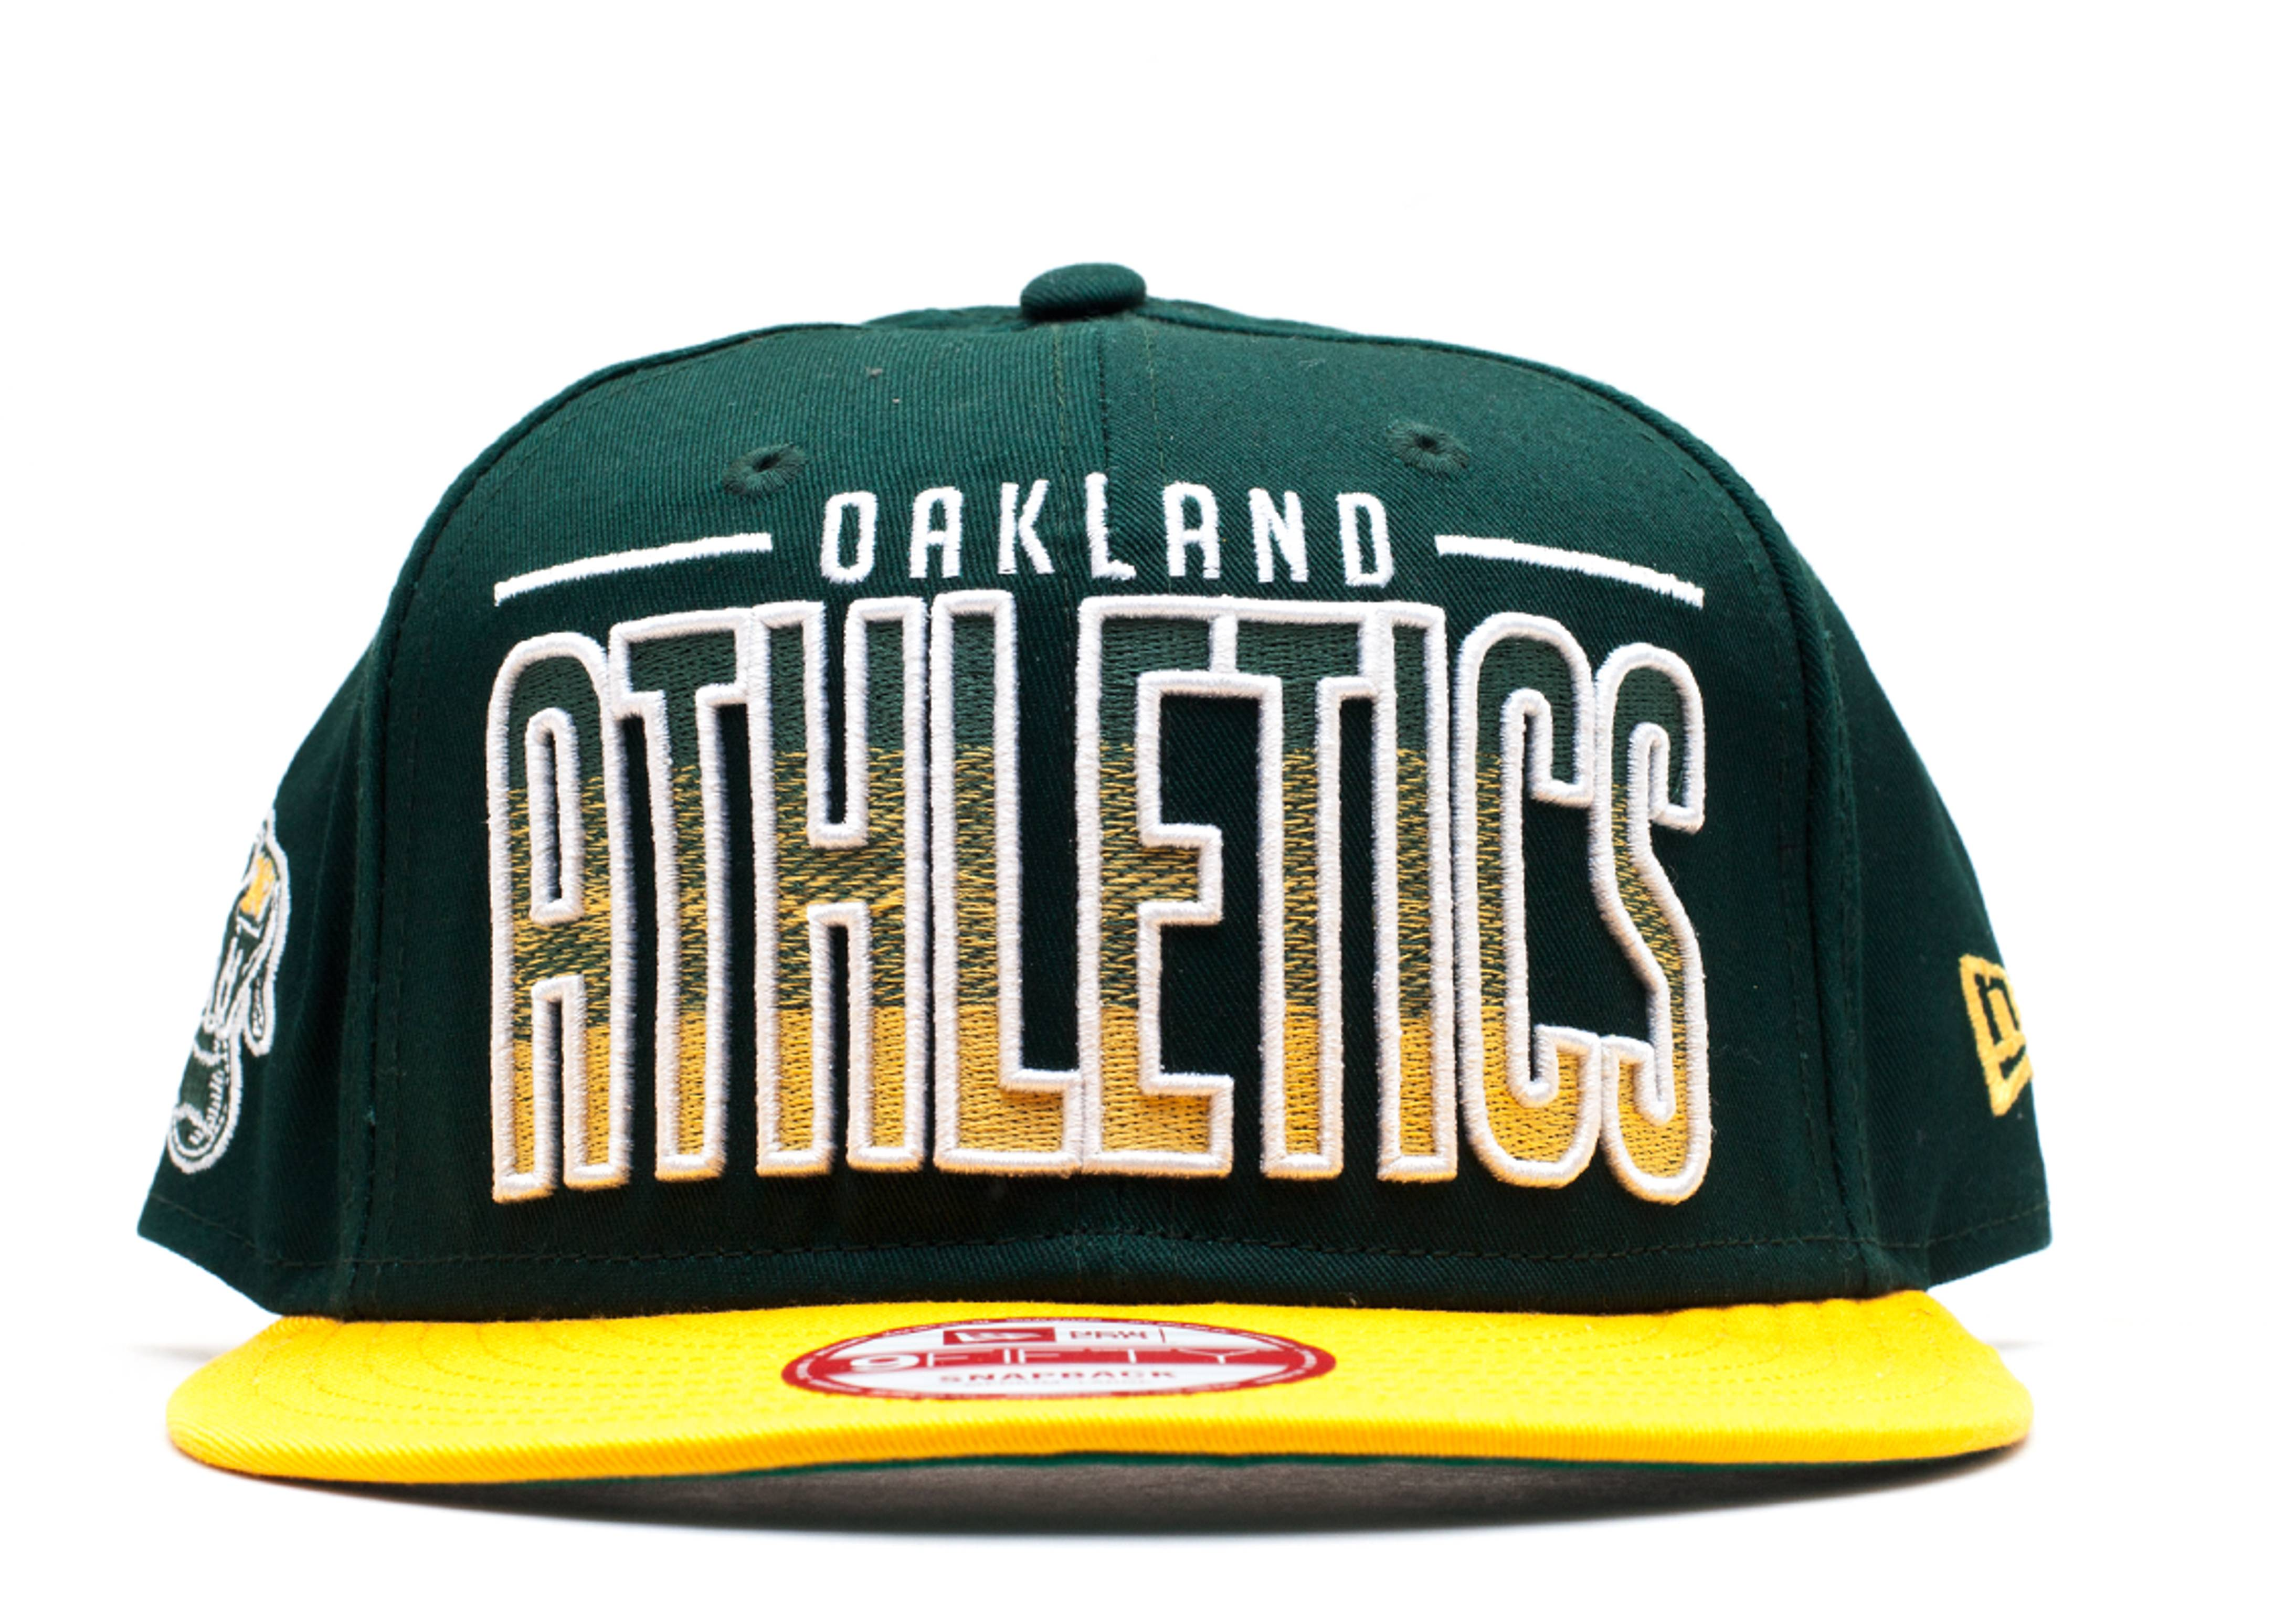 okland athletics snap-back